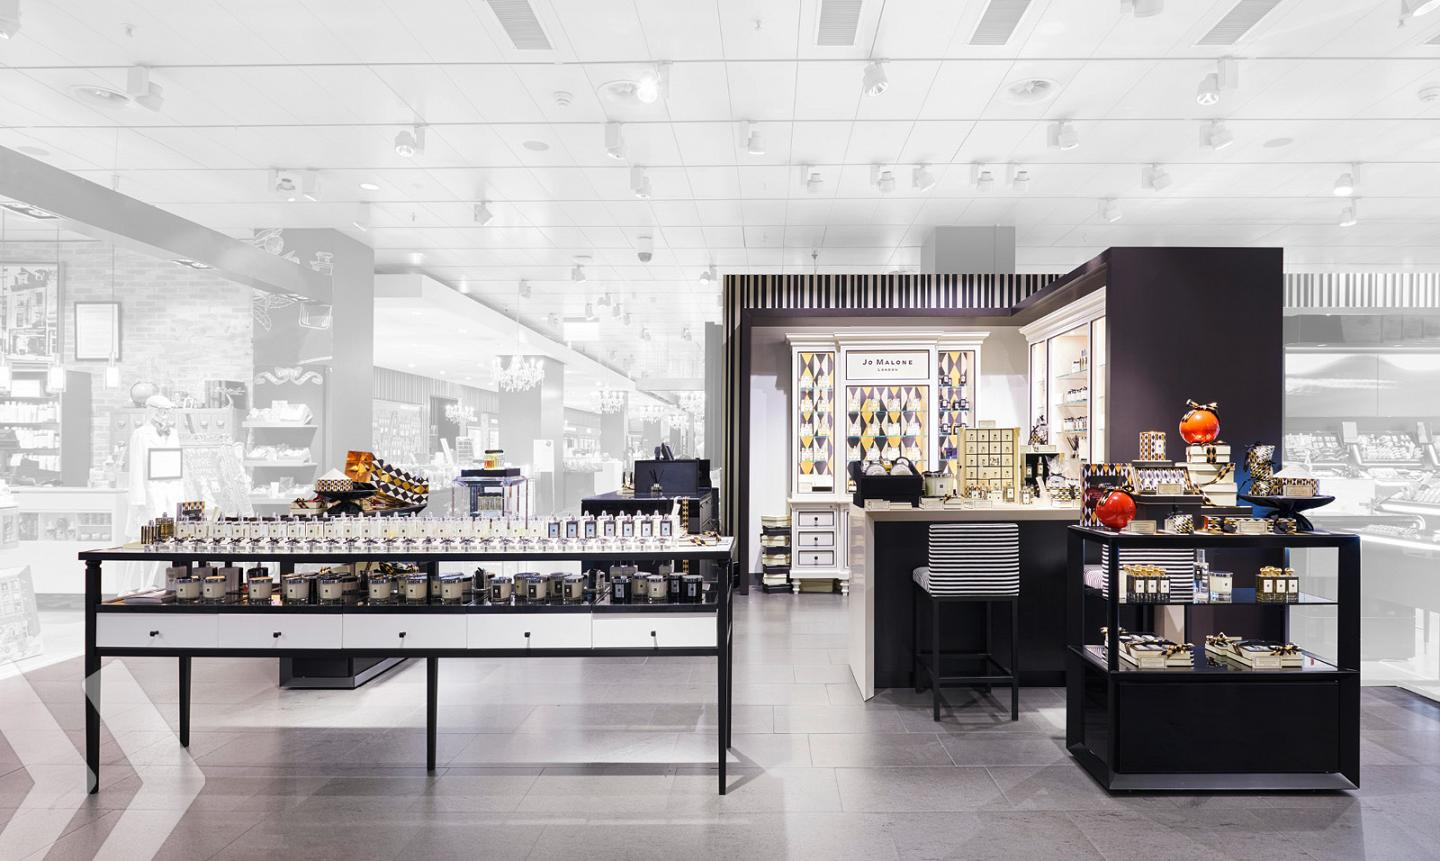 Jo Malone Shop in Shop made by ARNO 06